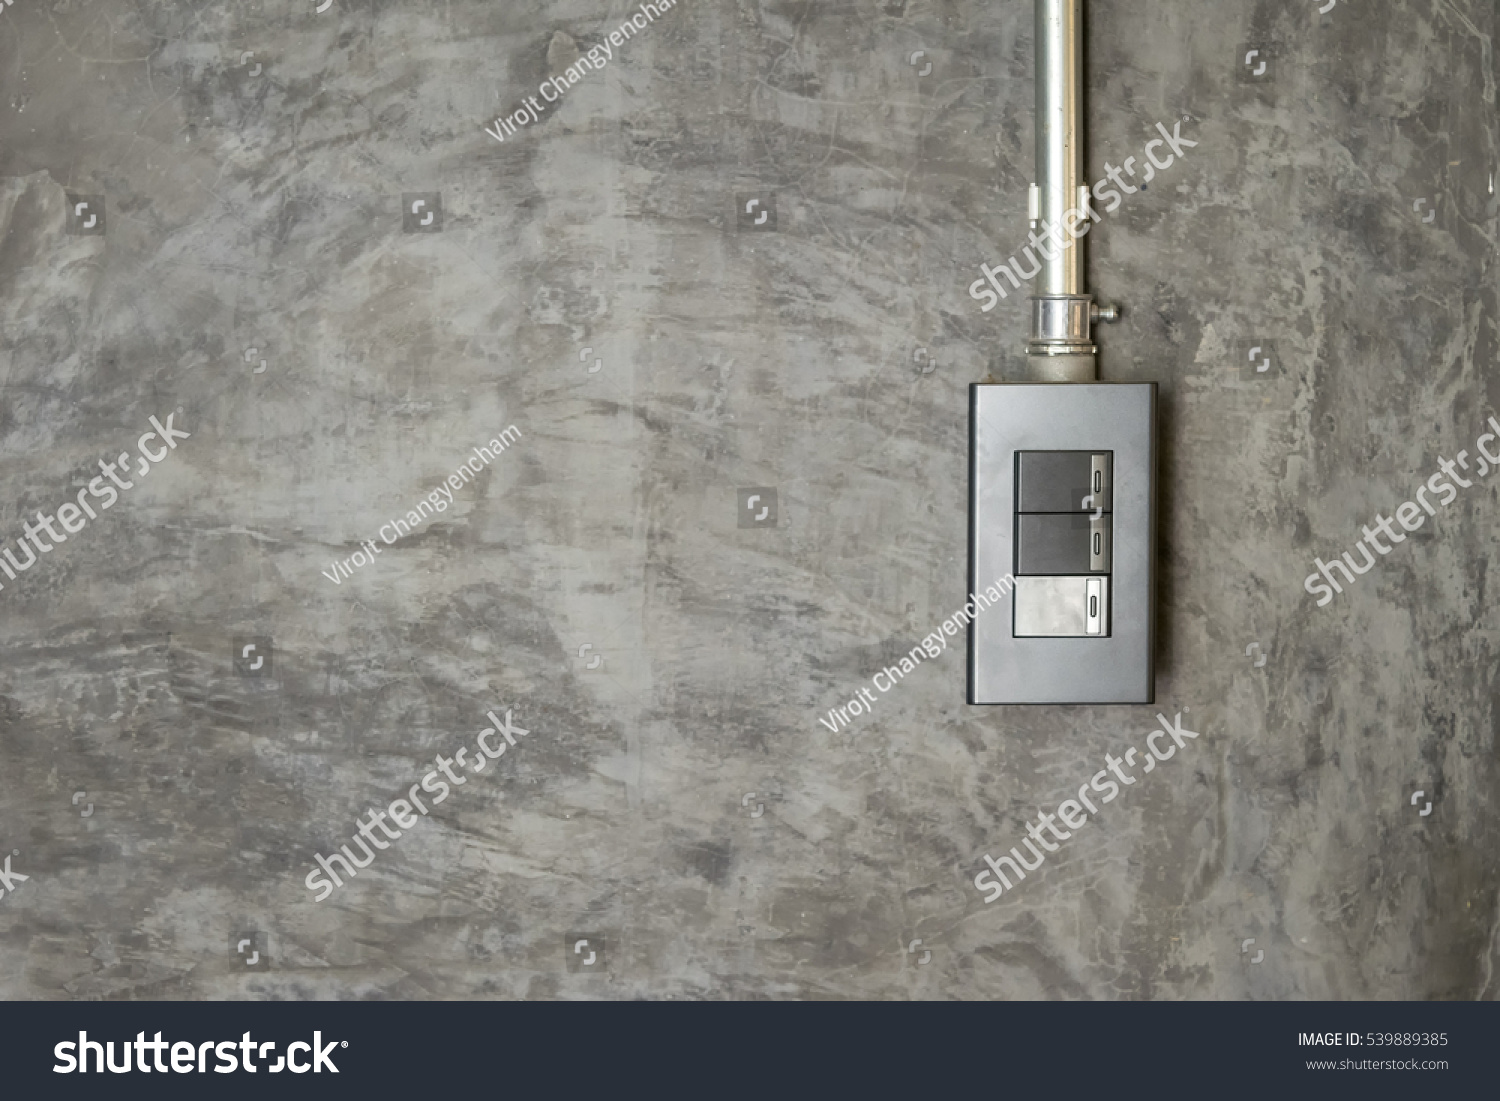 Switch Light On Bare Concrete Walls Stock Photo (Edit Now) 539889385 ...